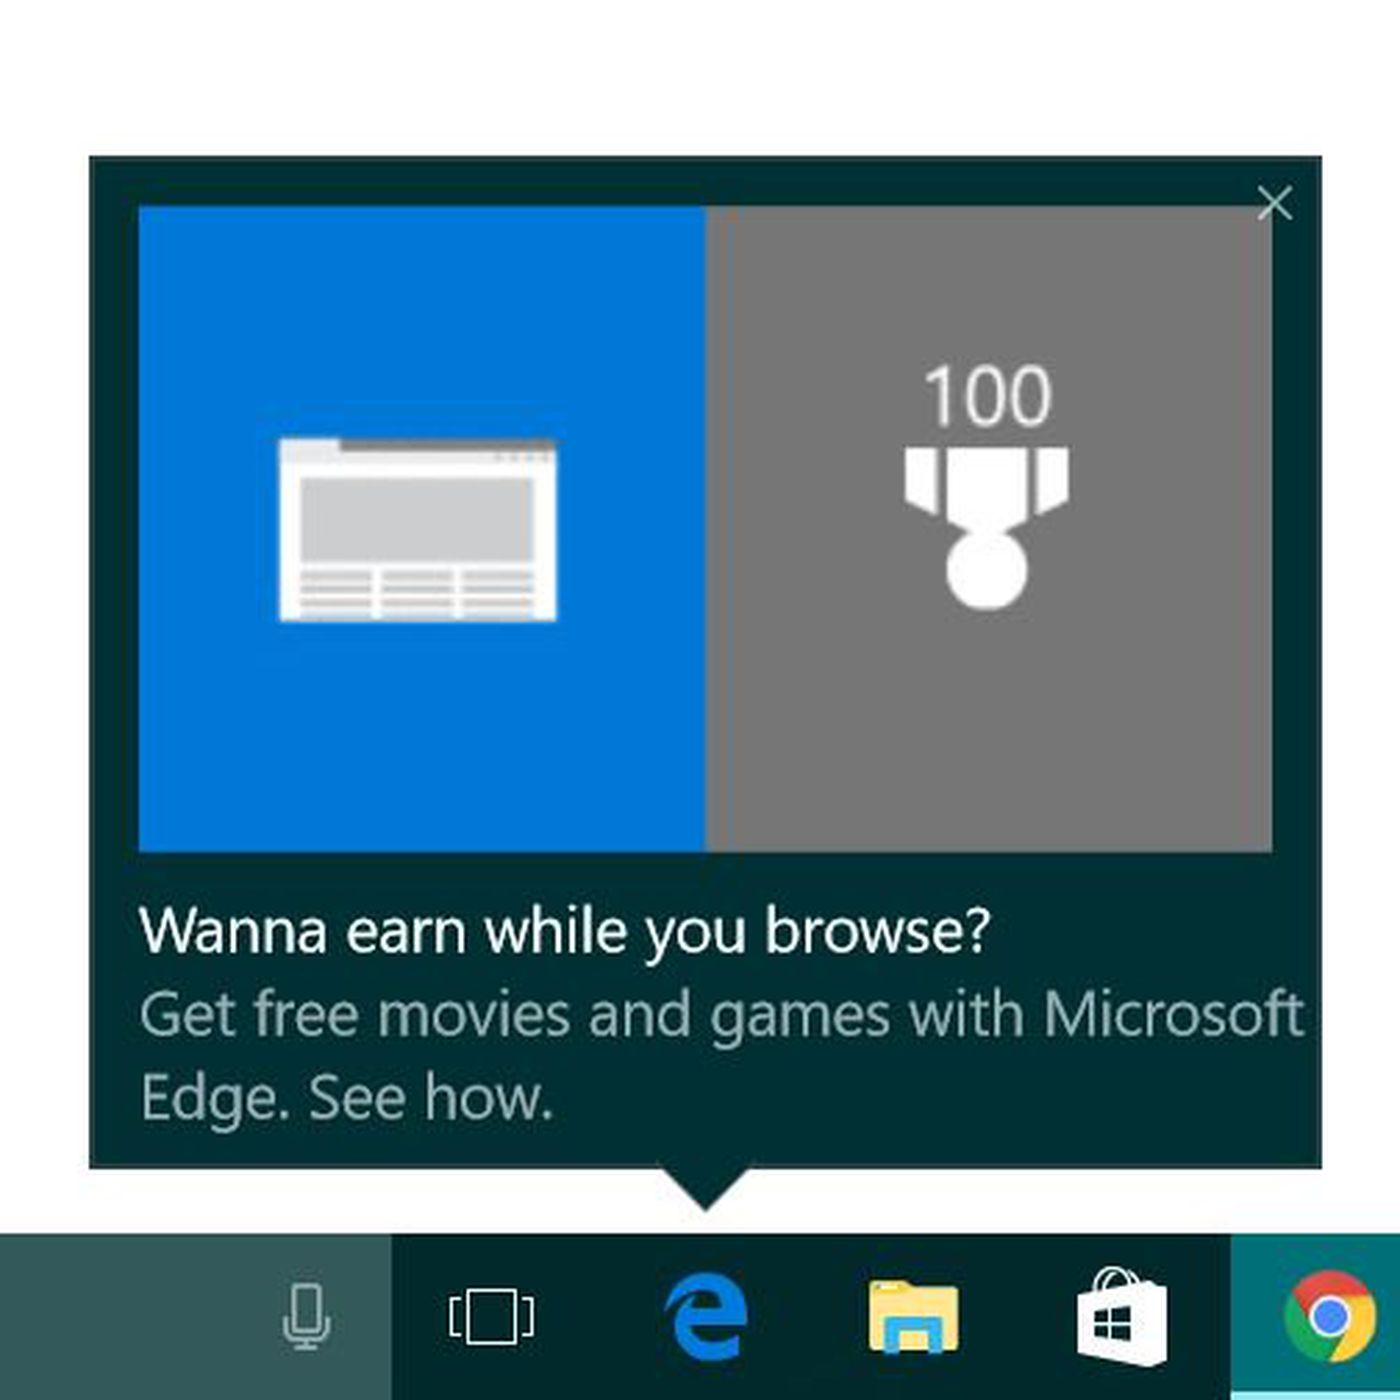 Microsoft is infesting Windows 10 with annoying ads - The Verge